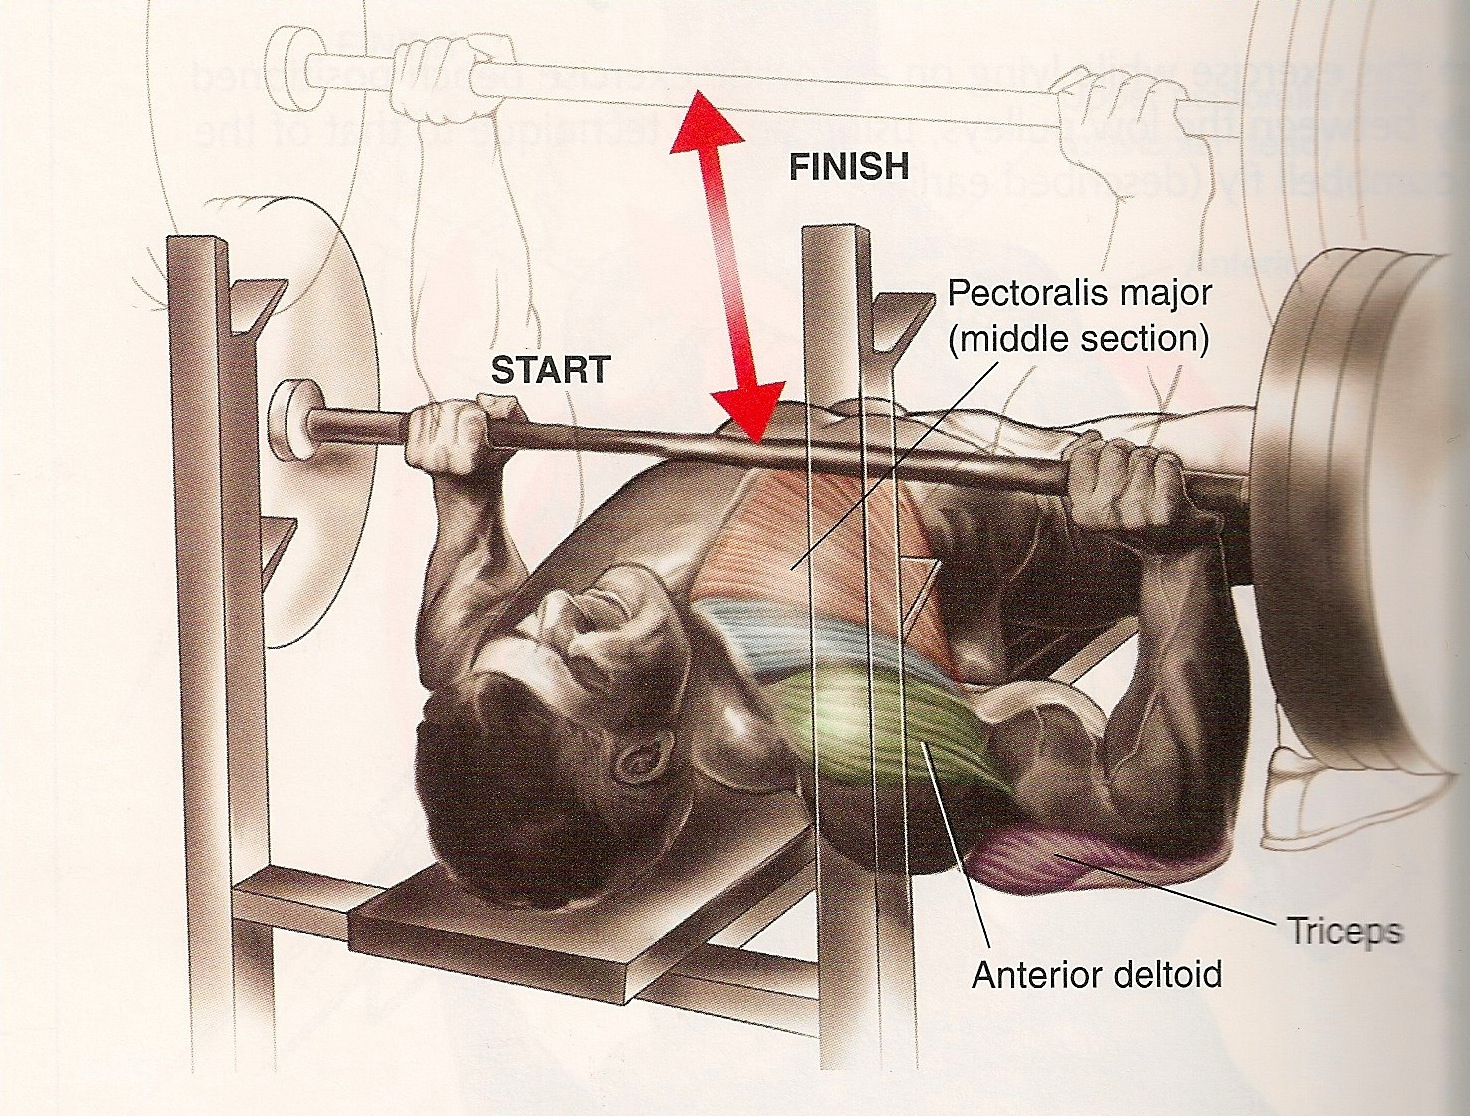 The Bench Press Fredkochtraining